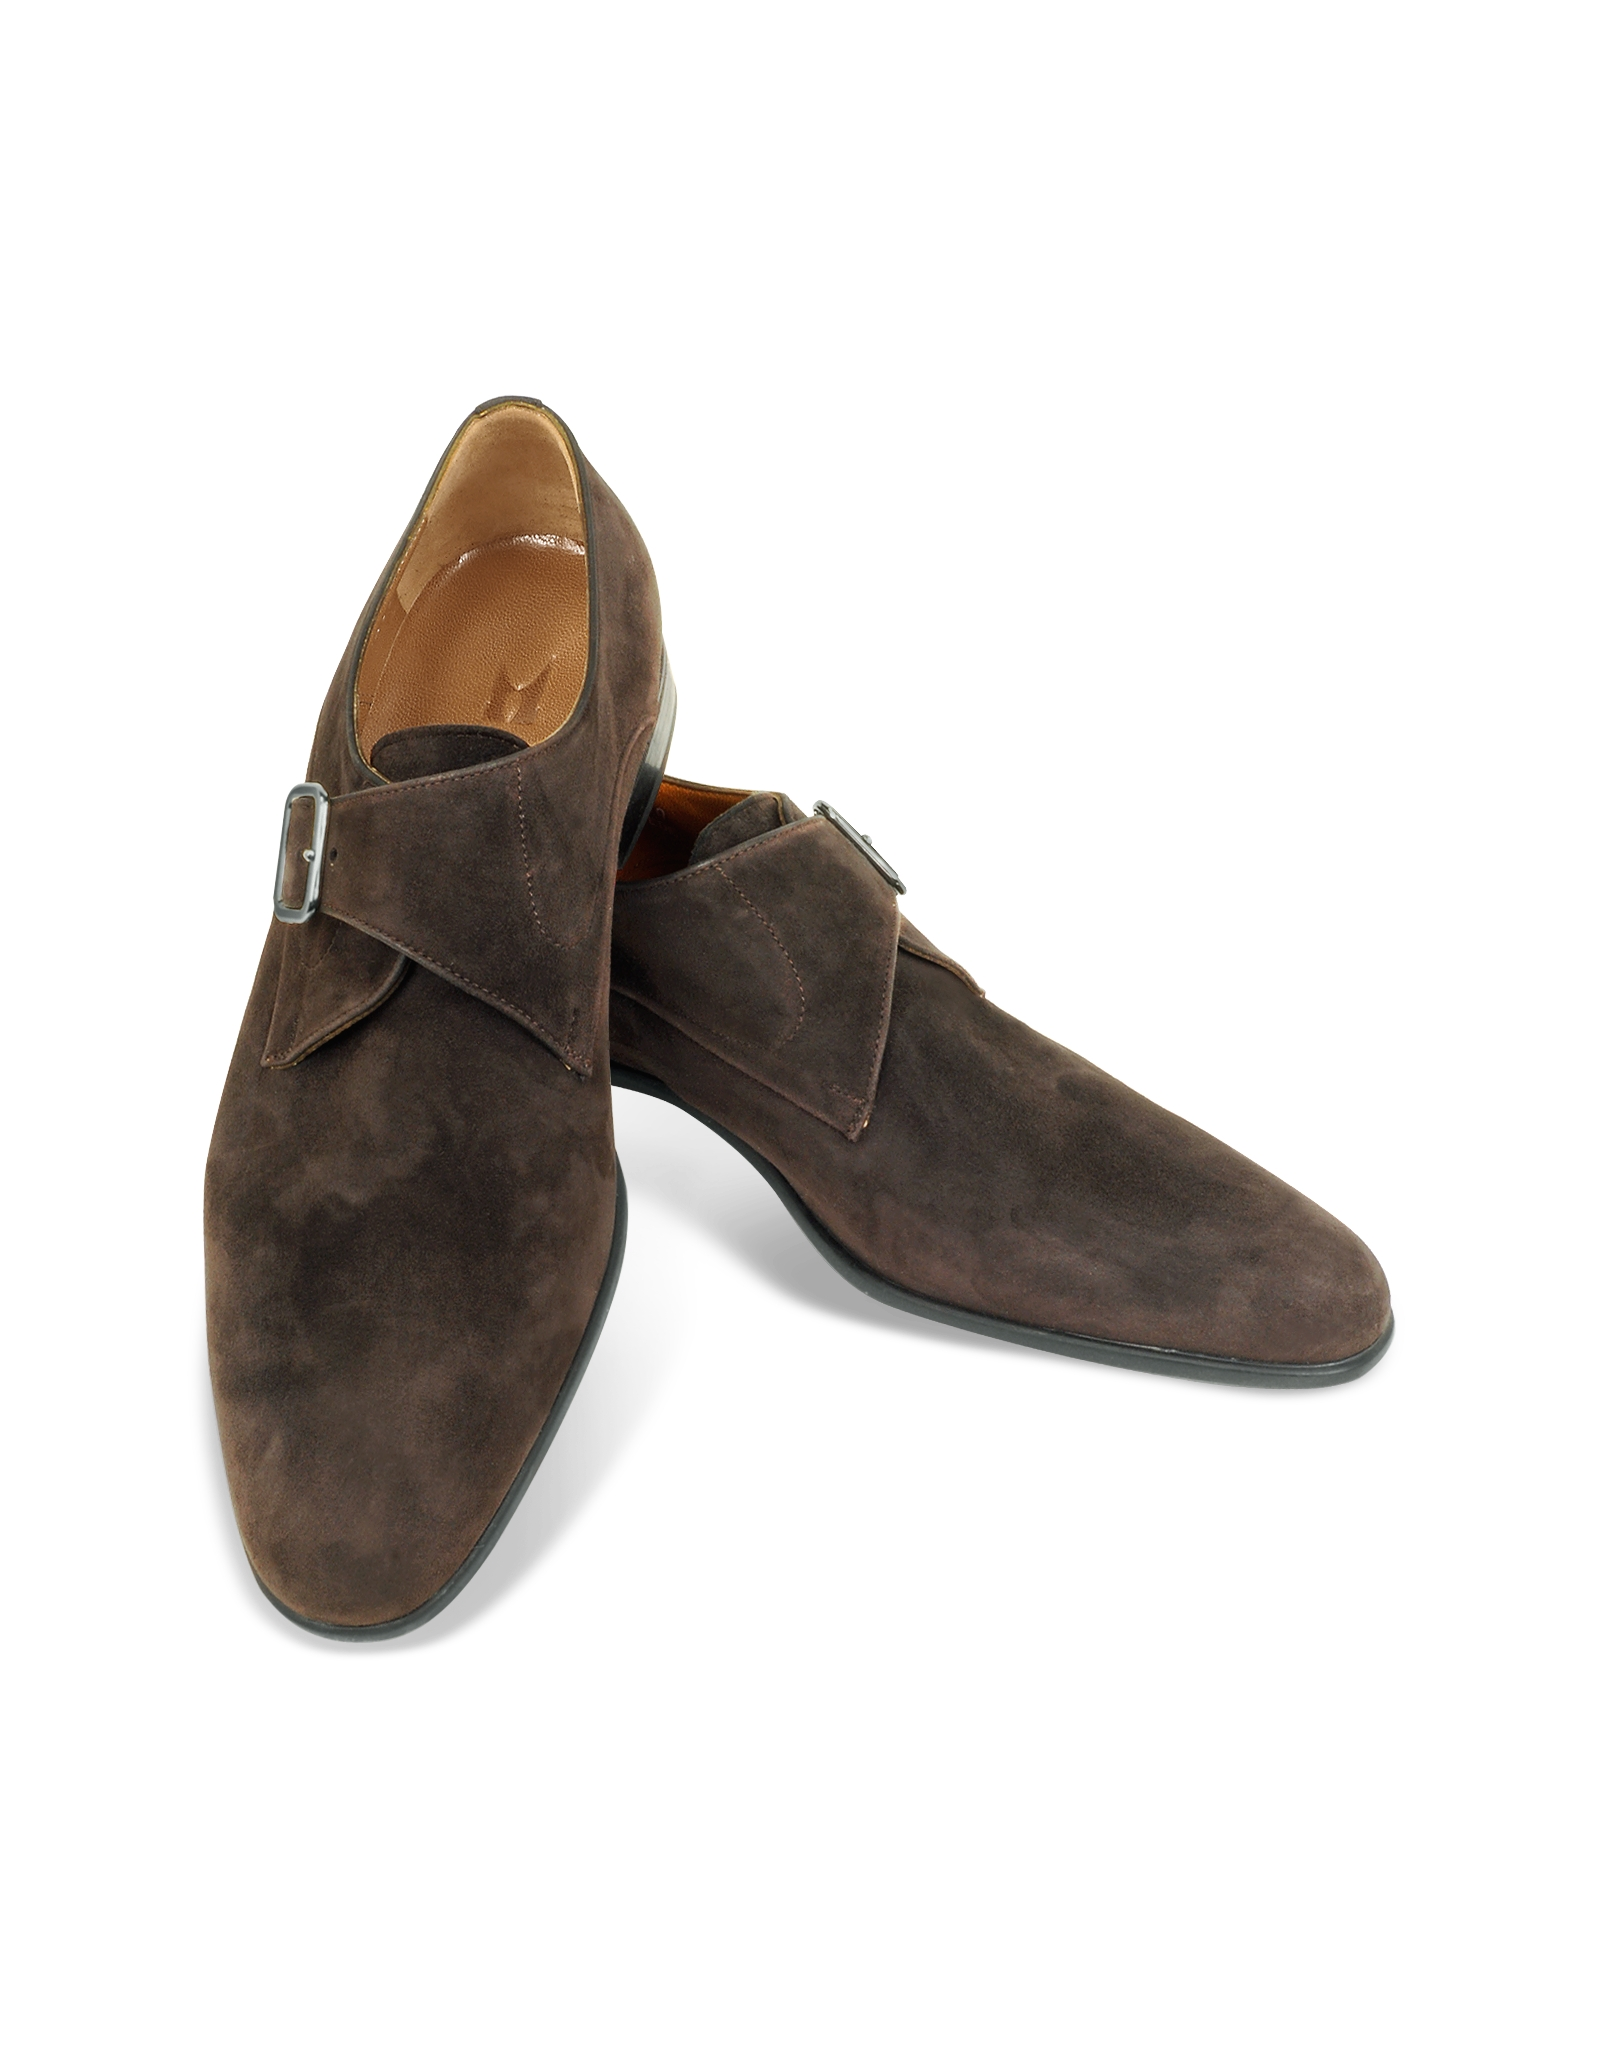 This is a pair of men's Alden Monk Strap dress shoes in brown suede leather size 13 C in fair condition. these have been heavily worn but still have a nice look to them. Made in the USA. $ Santoni Brown Suede Leather Double Monk Straps Dress Shoes w/ Bally Bag. $